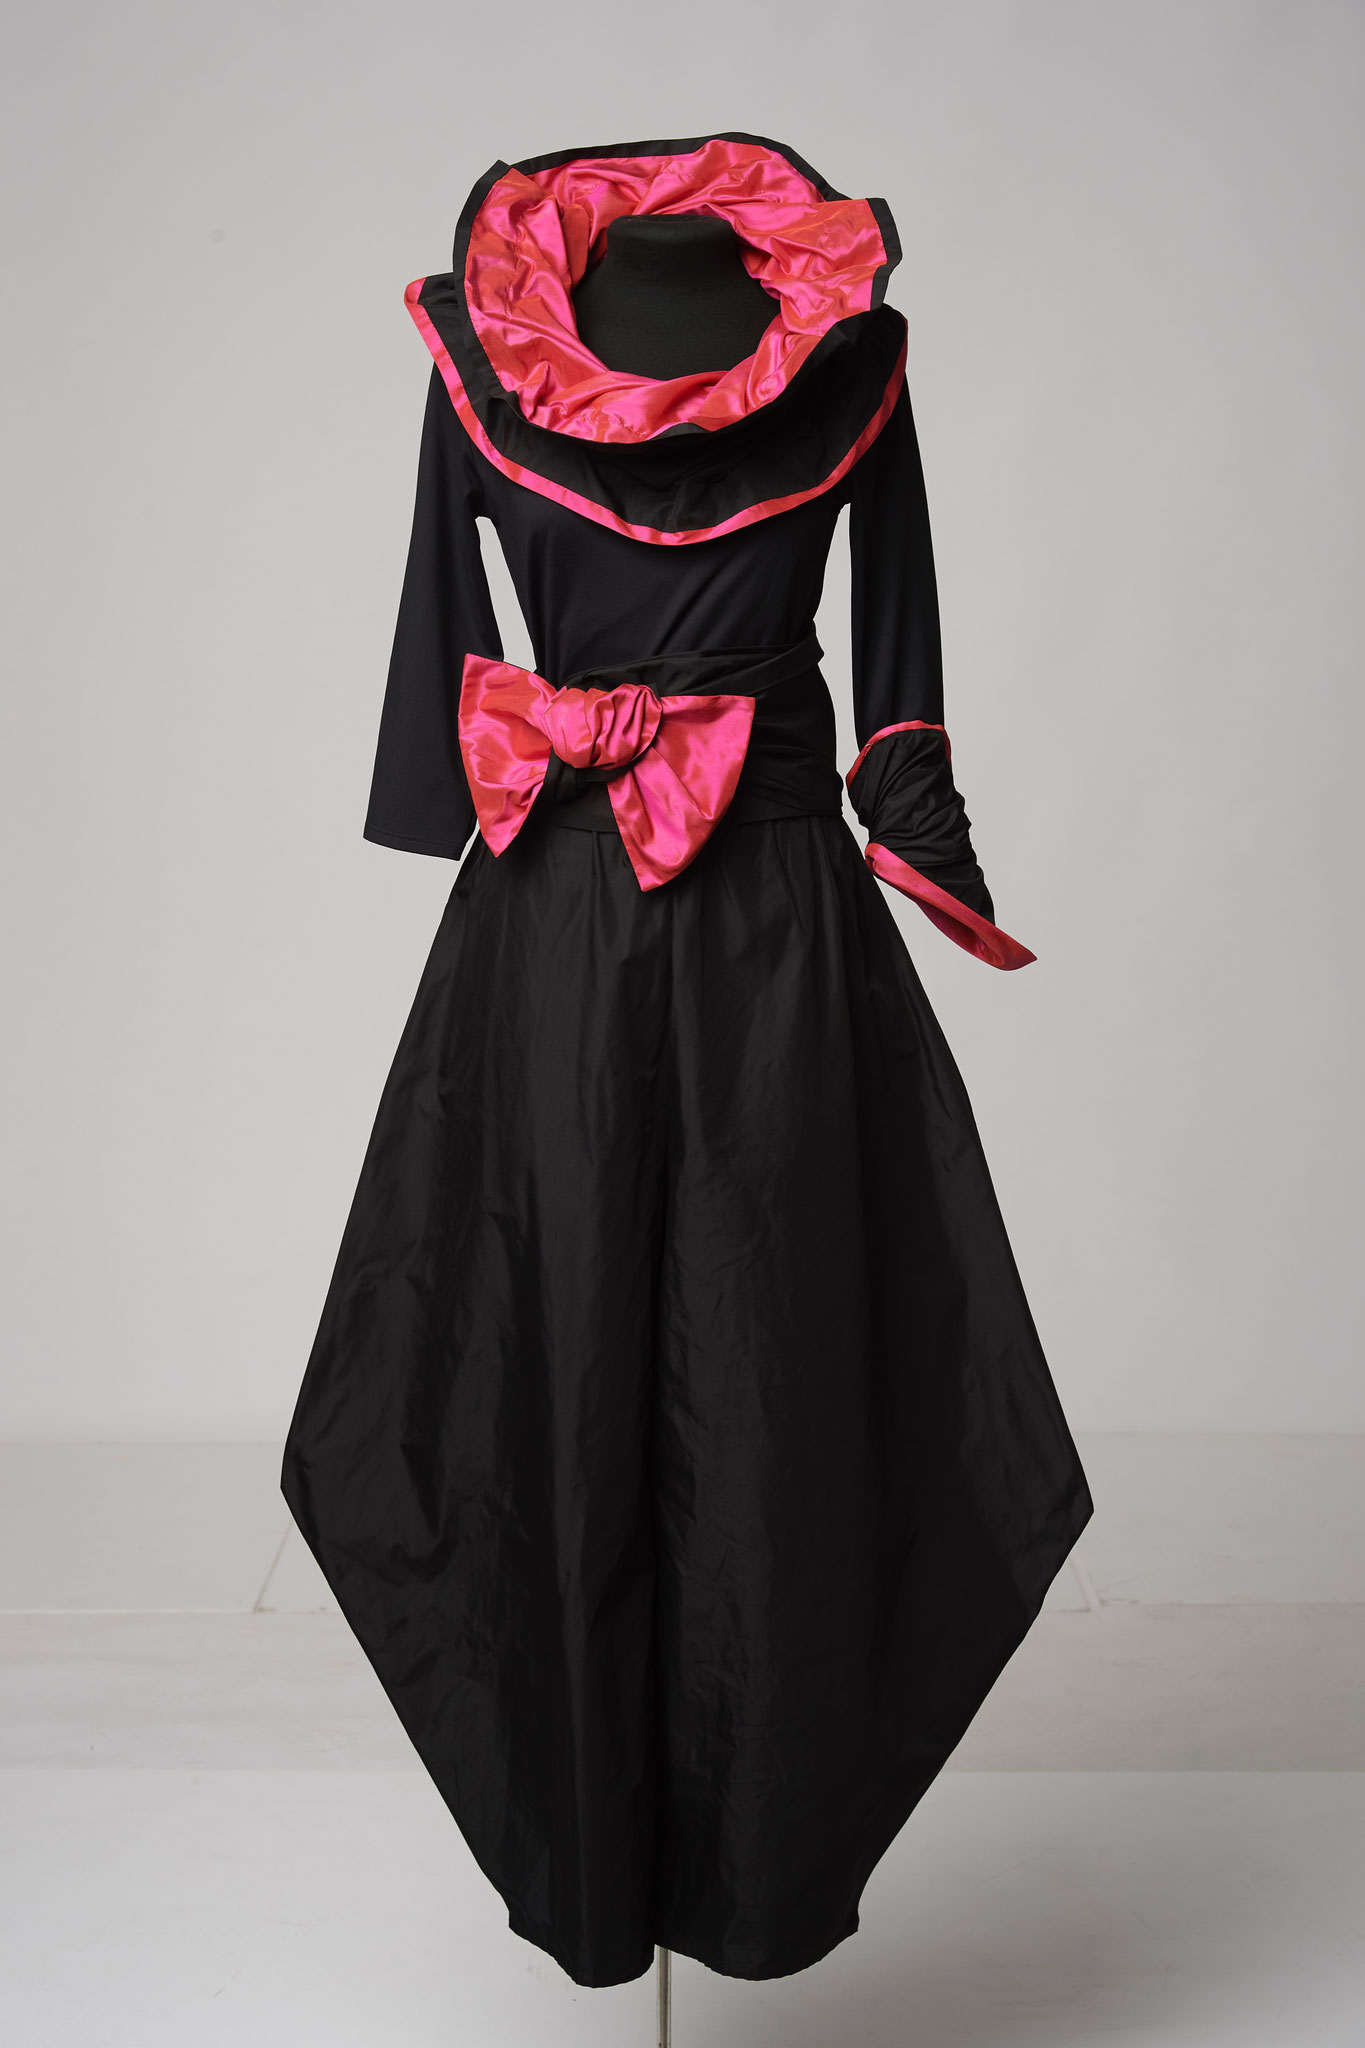 4-piece outfit: pointed trousers, sash, cuff, scarf. Material silk/microfibre